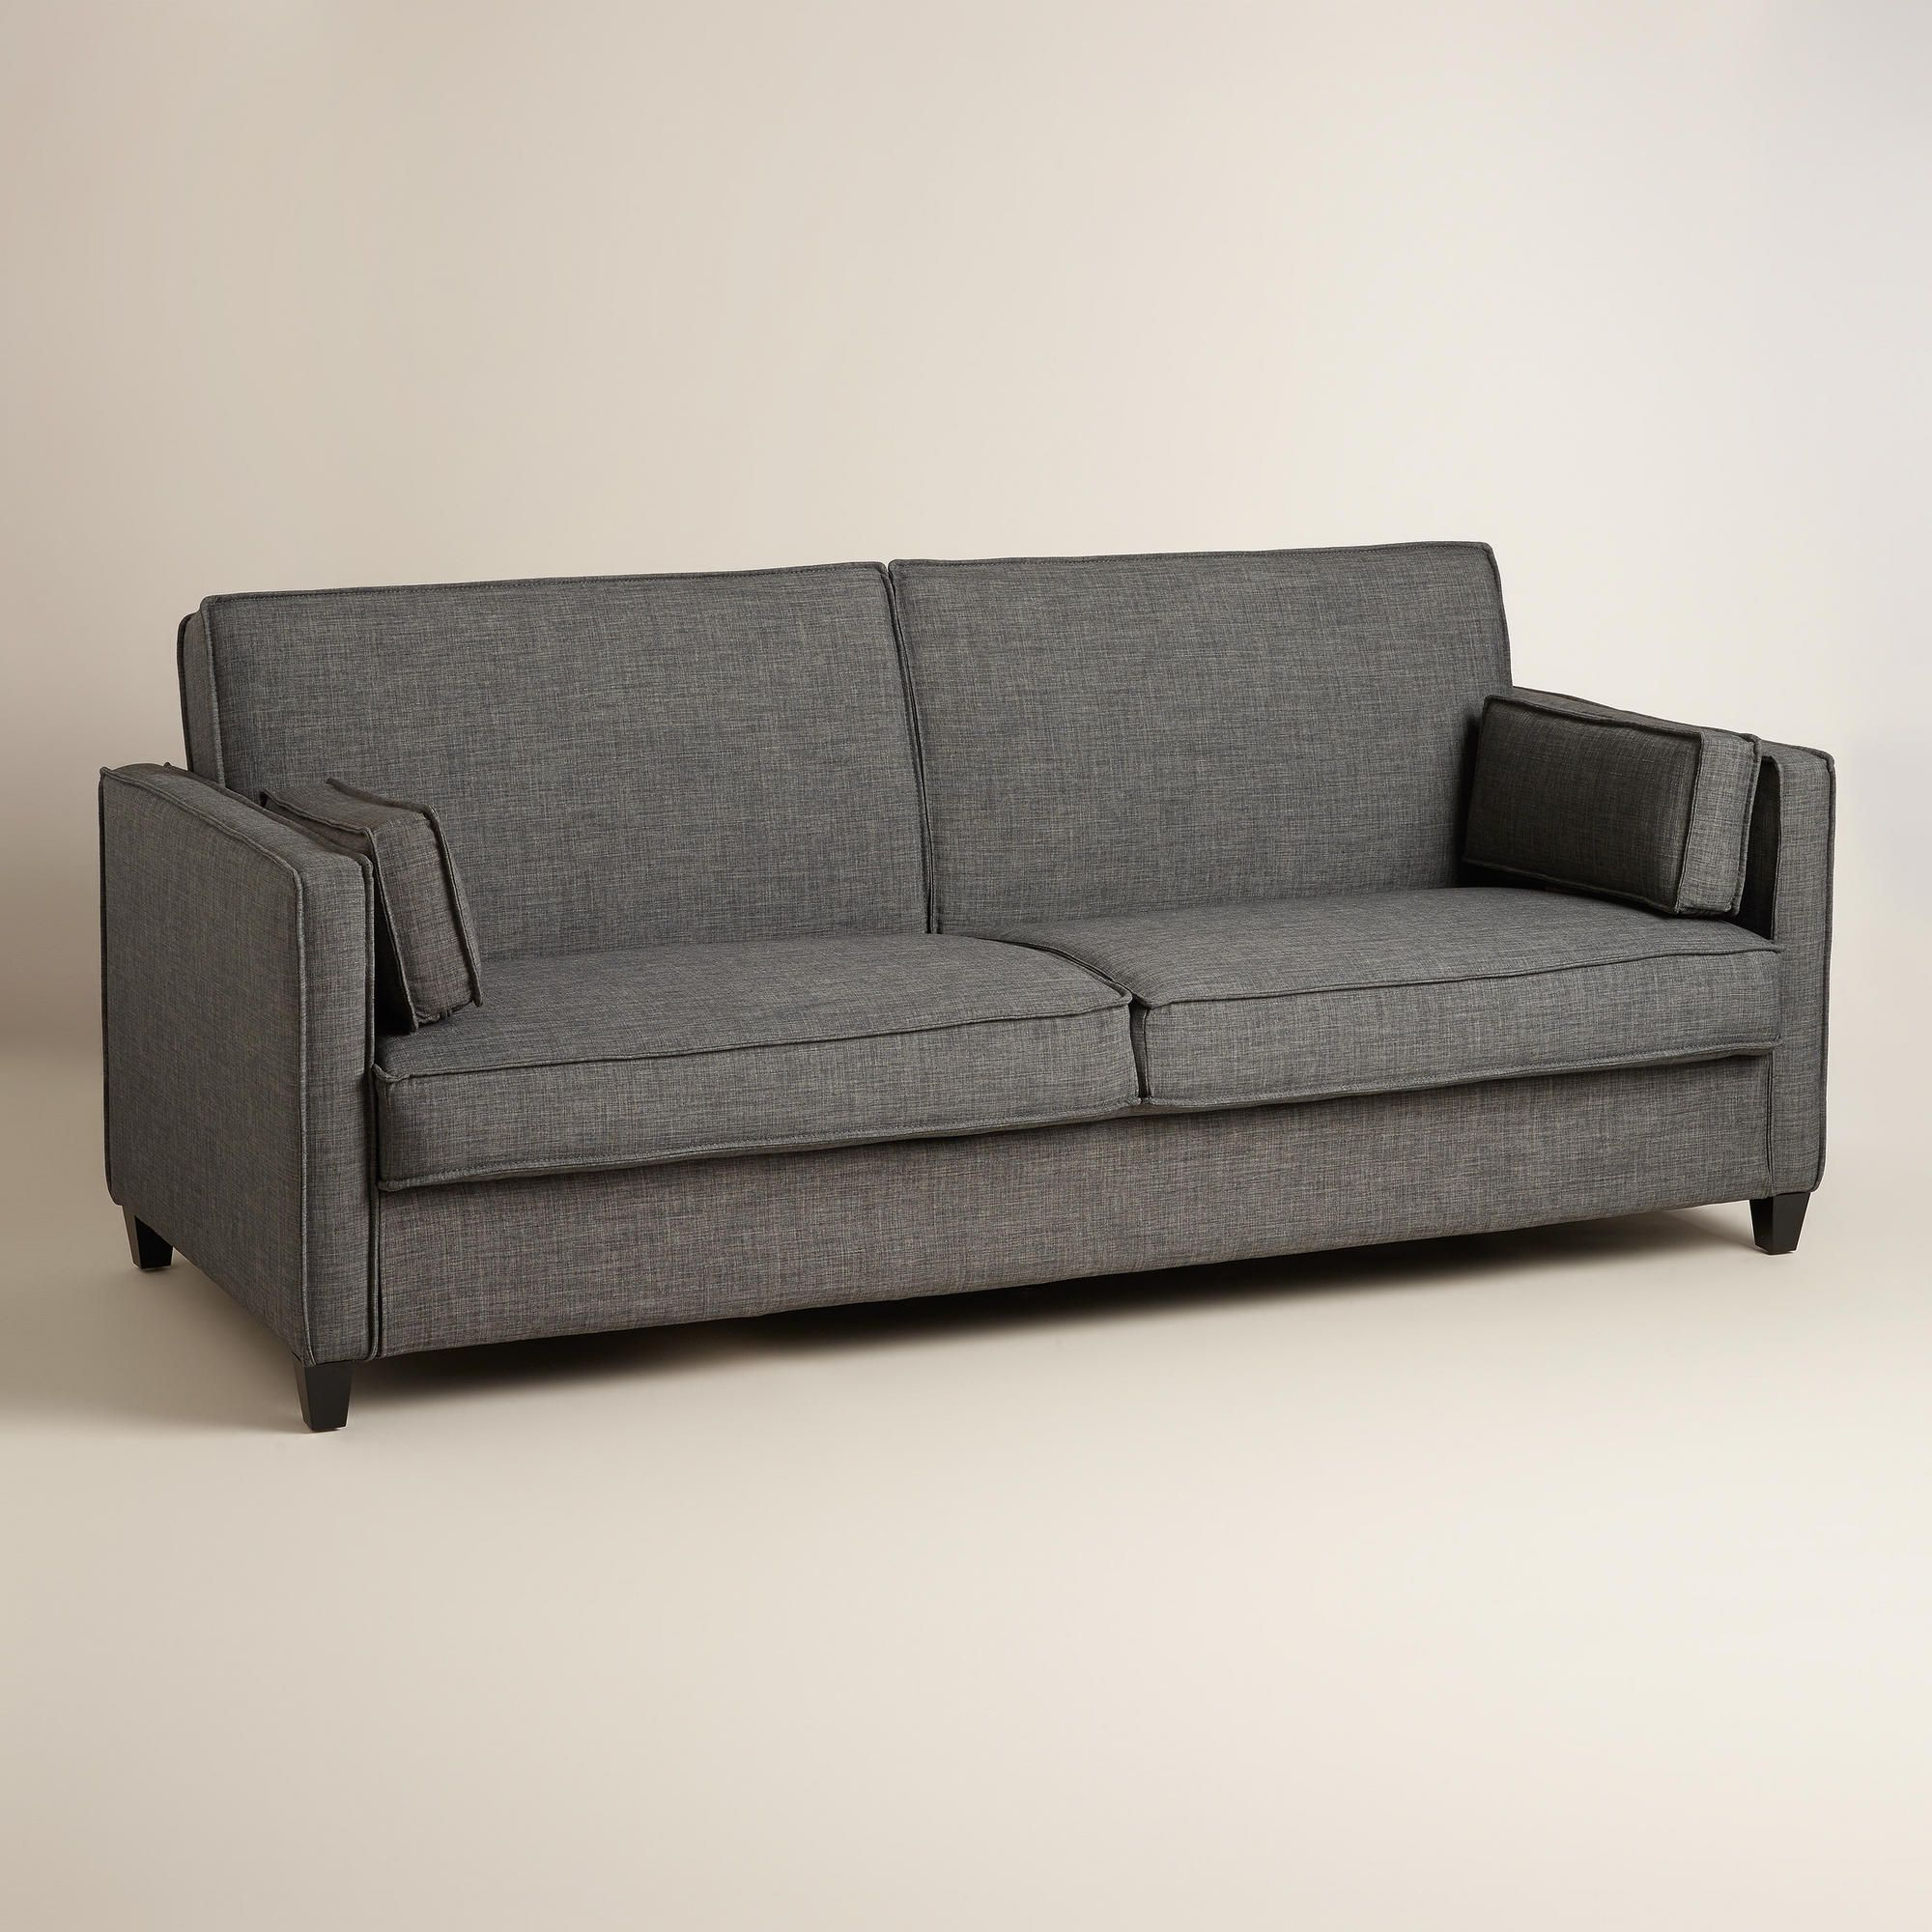 Charcoal Gray Nolee Folding Sofa Bed Folding Sofa Bed Folding